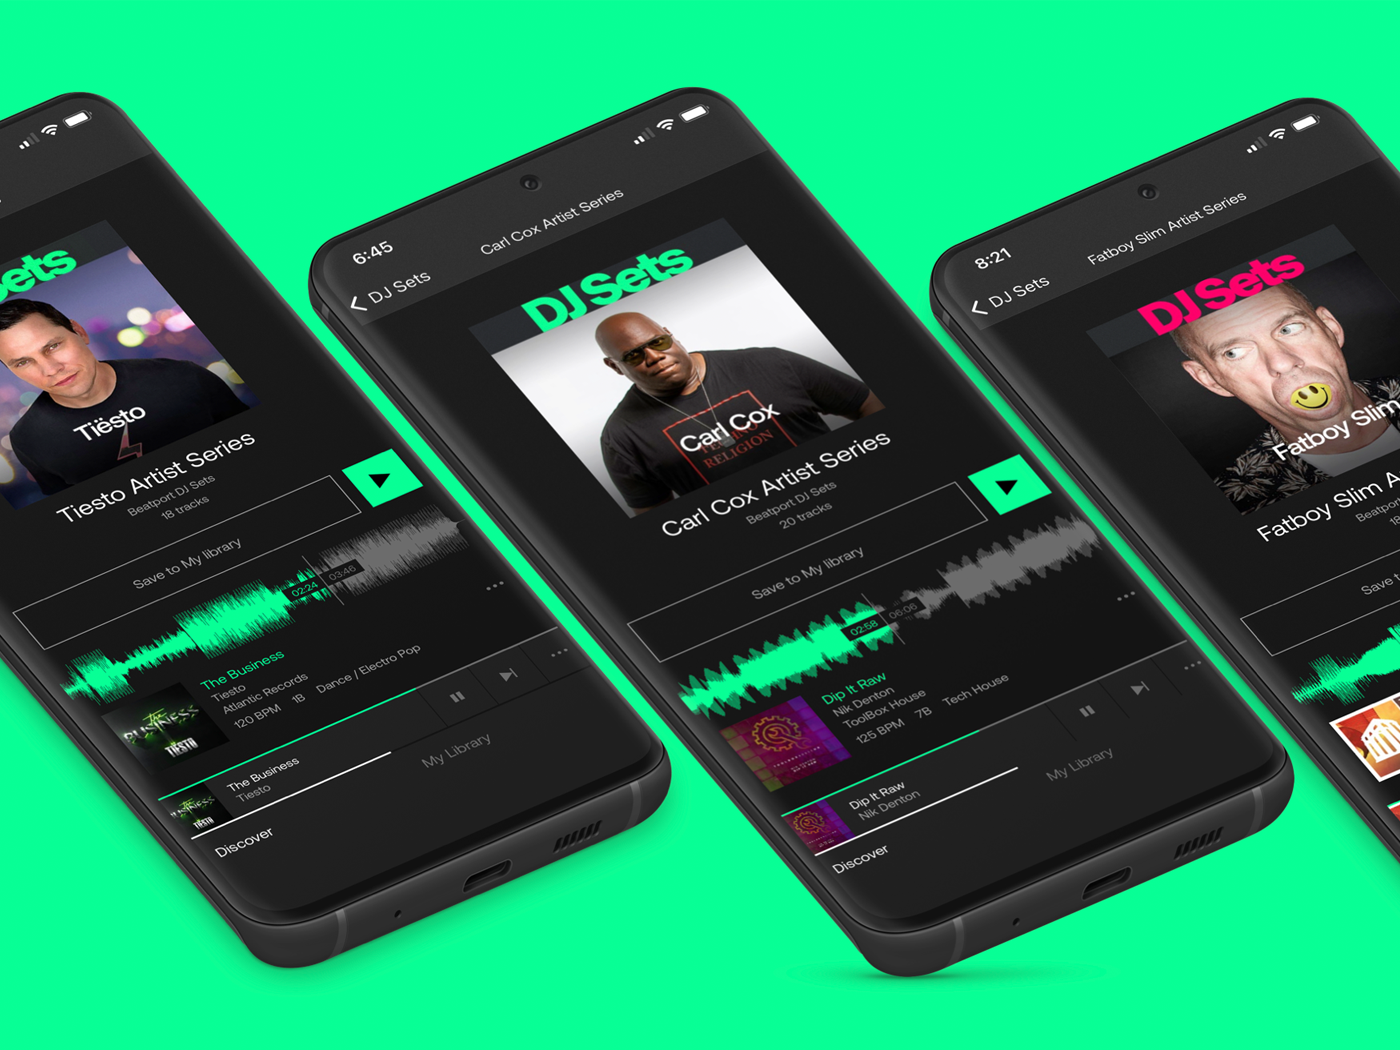 Beatport's iOS app is here, & with it a company rebrand